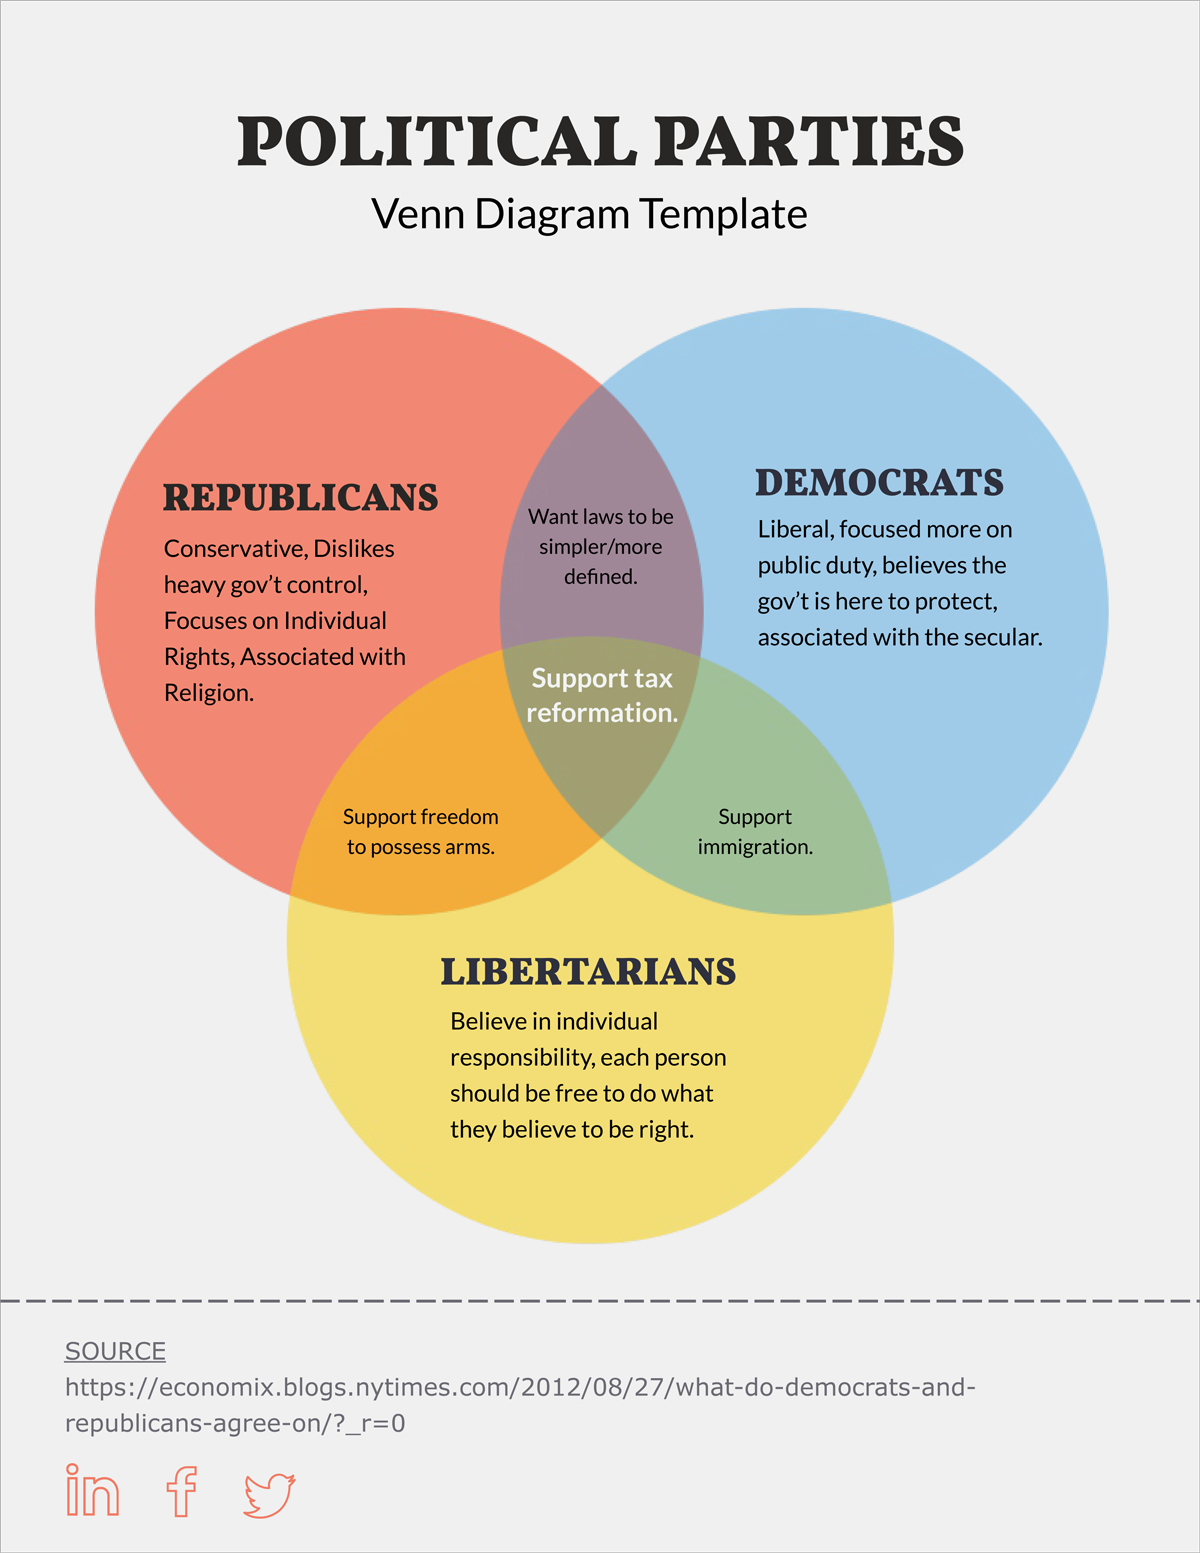 Free Venn Diagram Template Edit Online And Download Visual Read More About Cat 5 Wiring Images Source Here Three Set